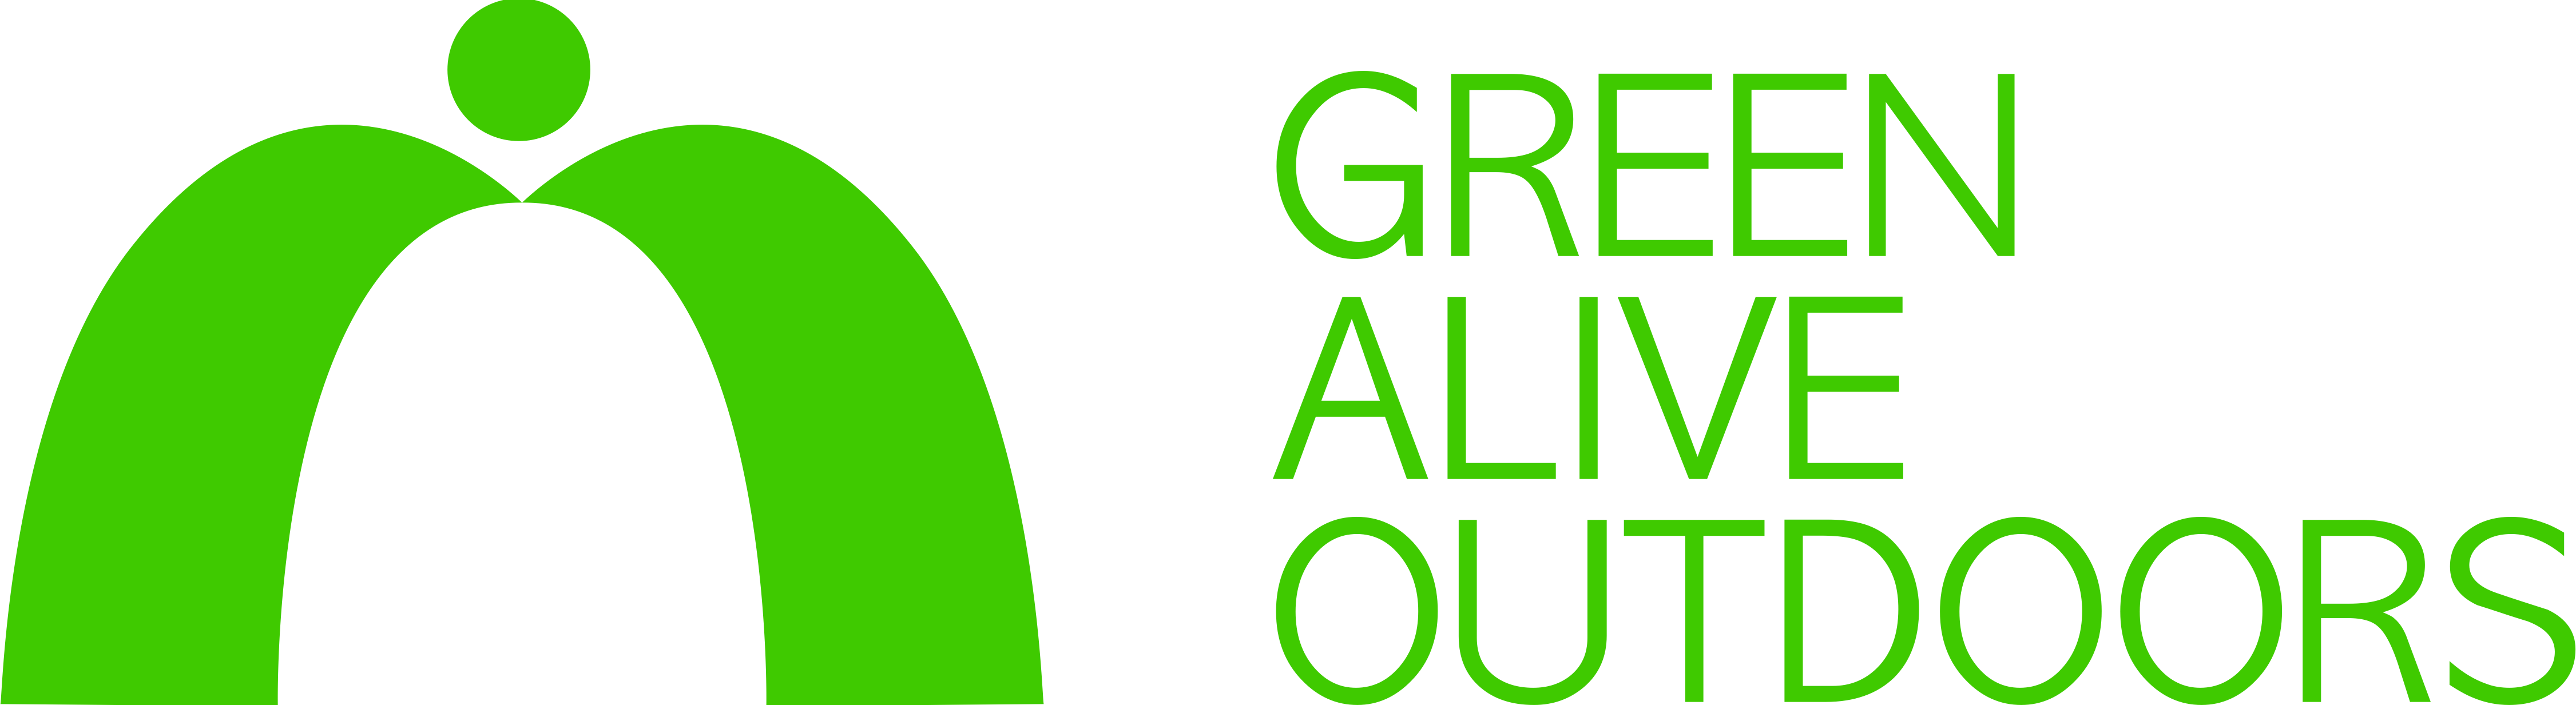 GREEN ALIVE OUTDOORS